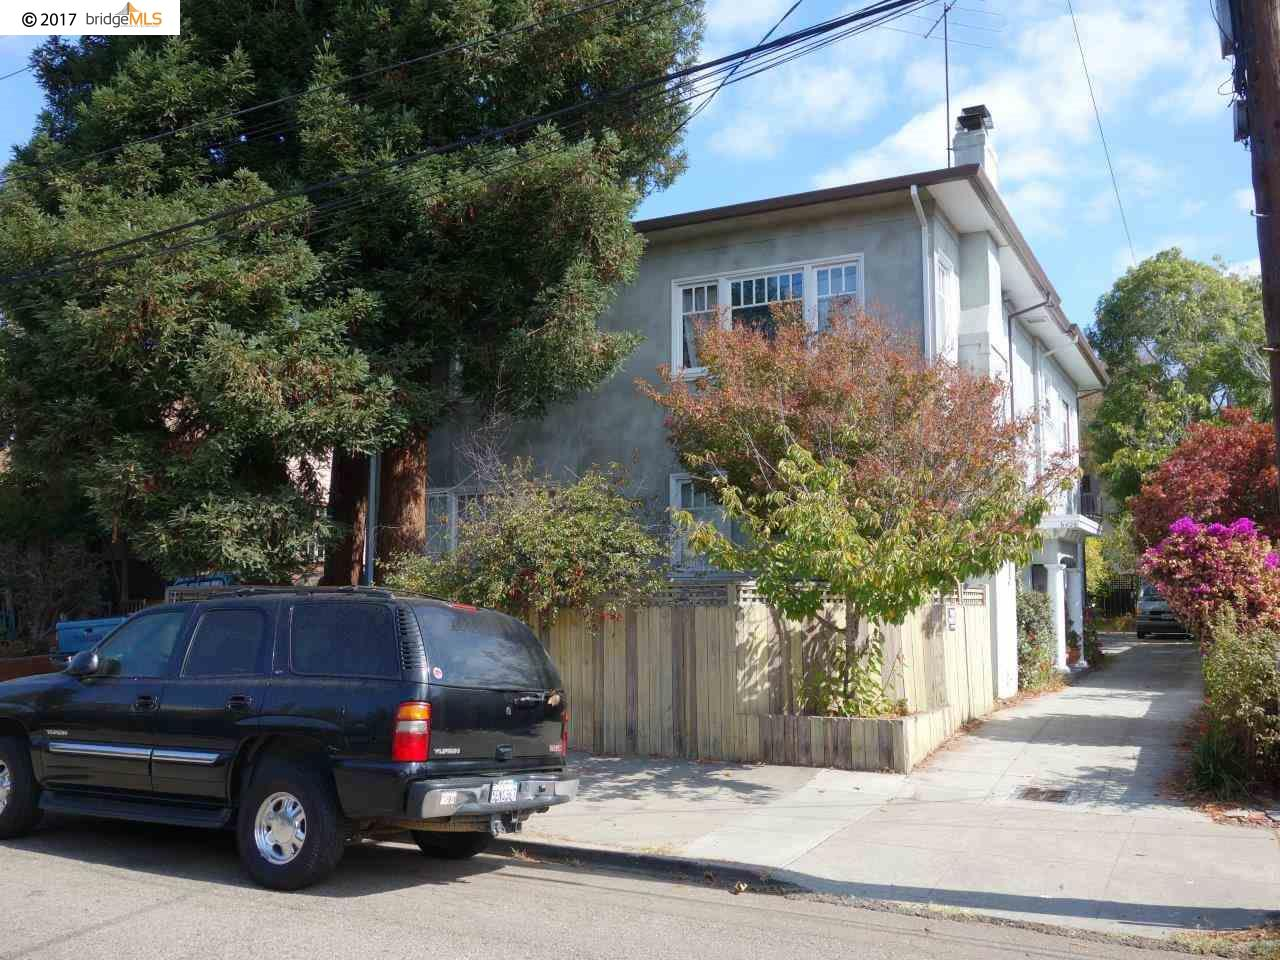 6426 BENVENUE AVENUE #2, OAKLAND, CA 94618  Photo 1